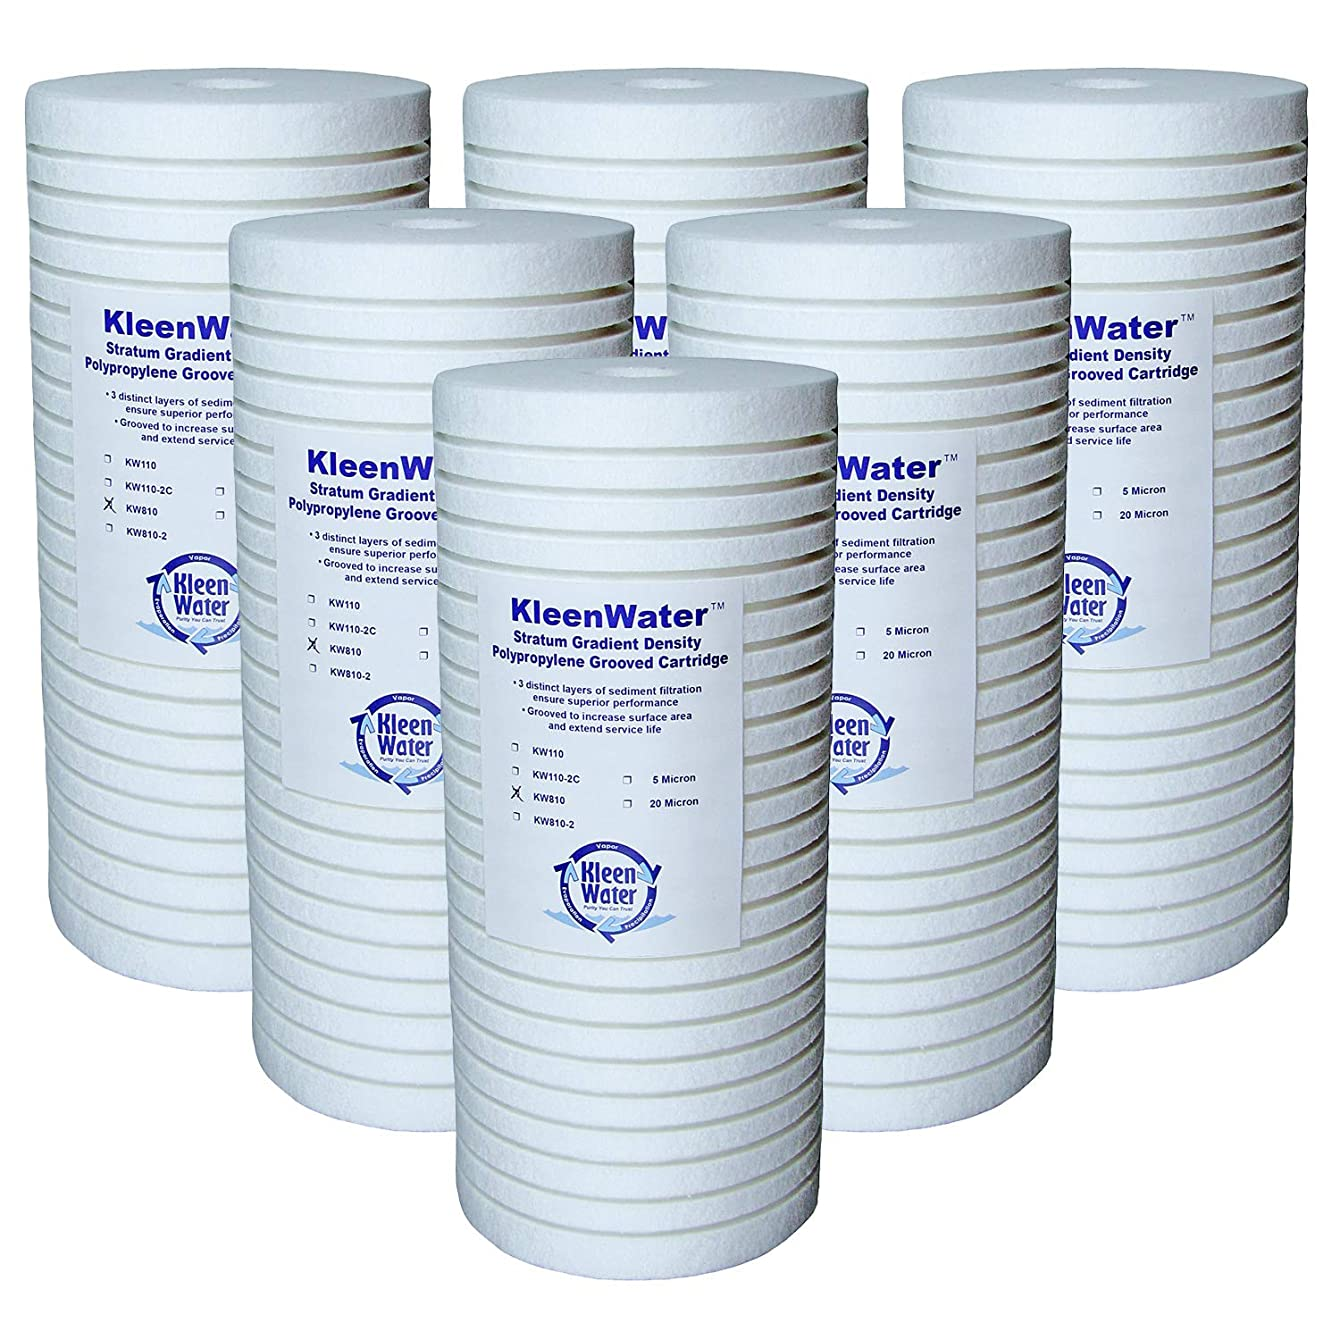 KleenWater KW810 Replacement Water Filter Cartridges, Compatible with Aqua-Pure AP810, 5 Micron Dirt Rust Sediment Whole House Filters, Set of 6 tlocsepifnabr85